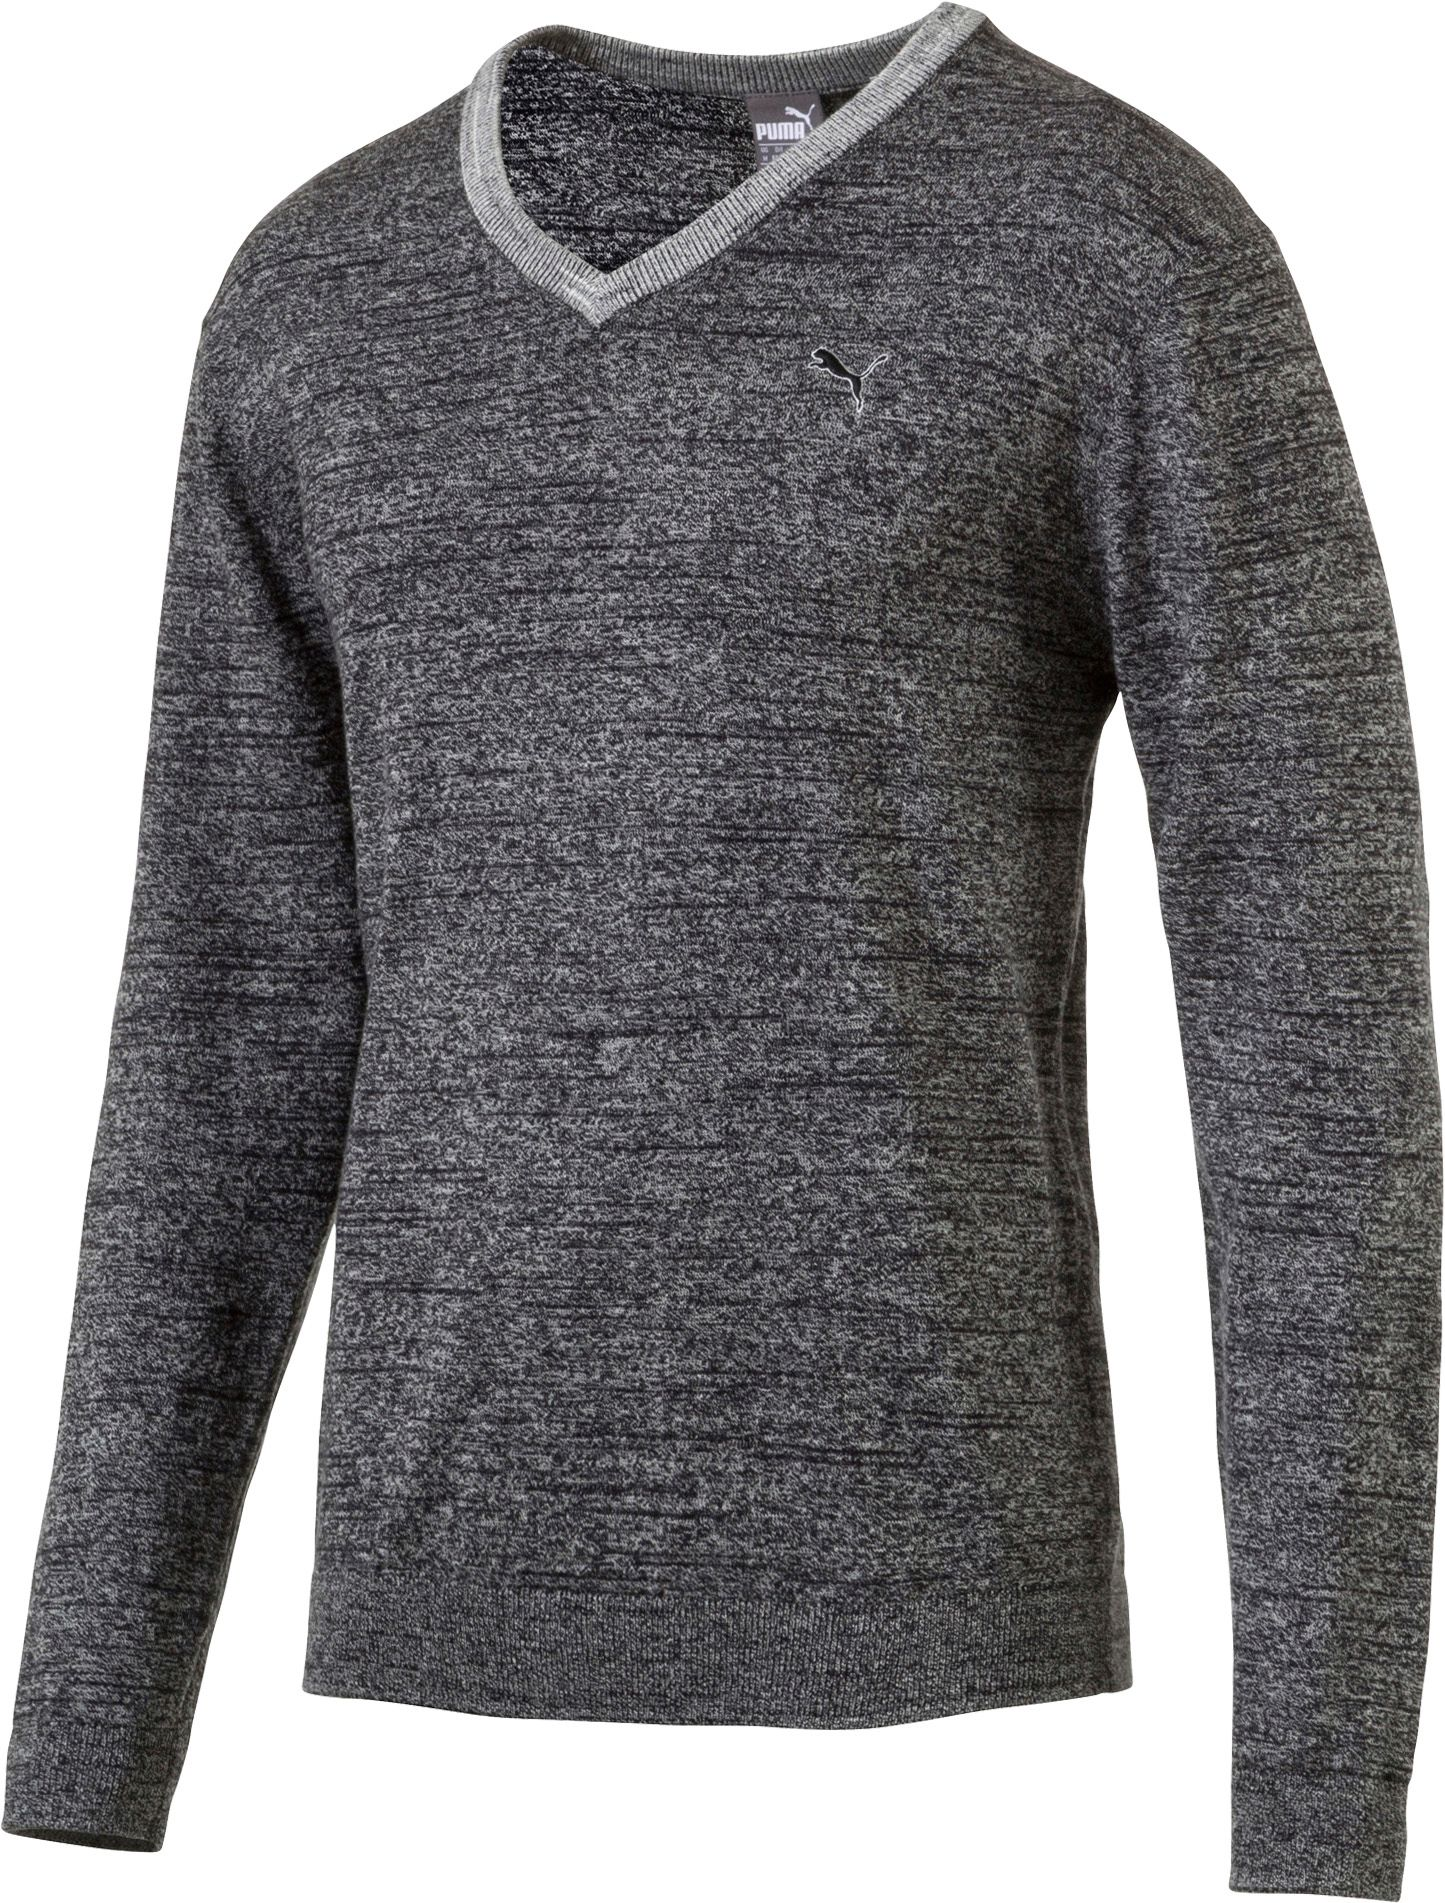 PUMA Mens V Neck Golf Sweater DICKS Sporting Goods